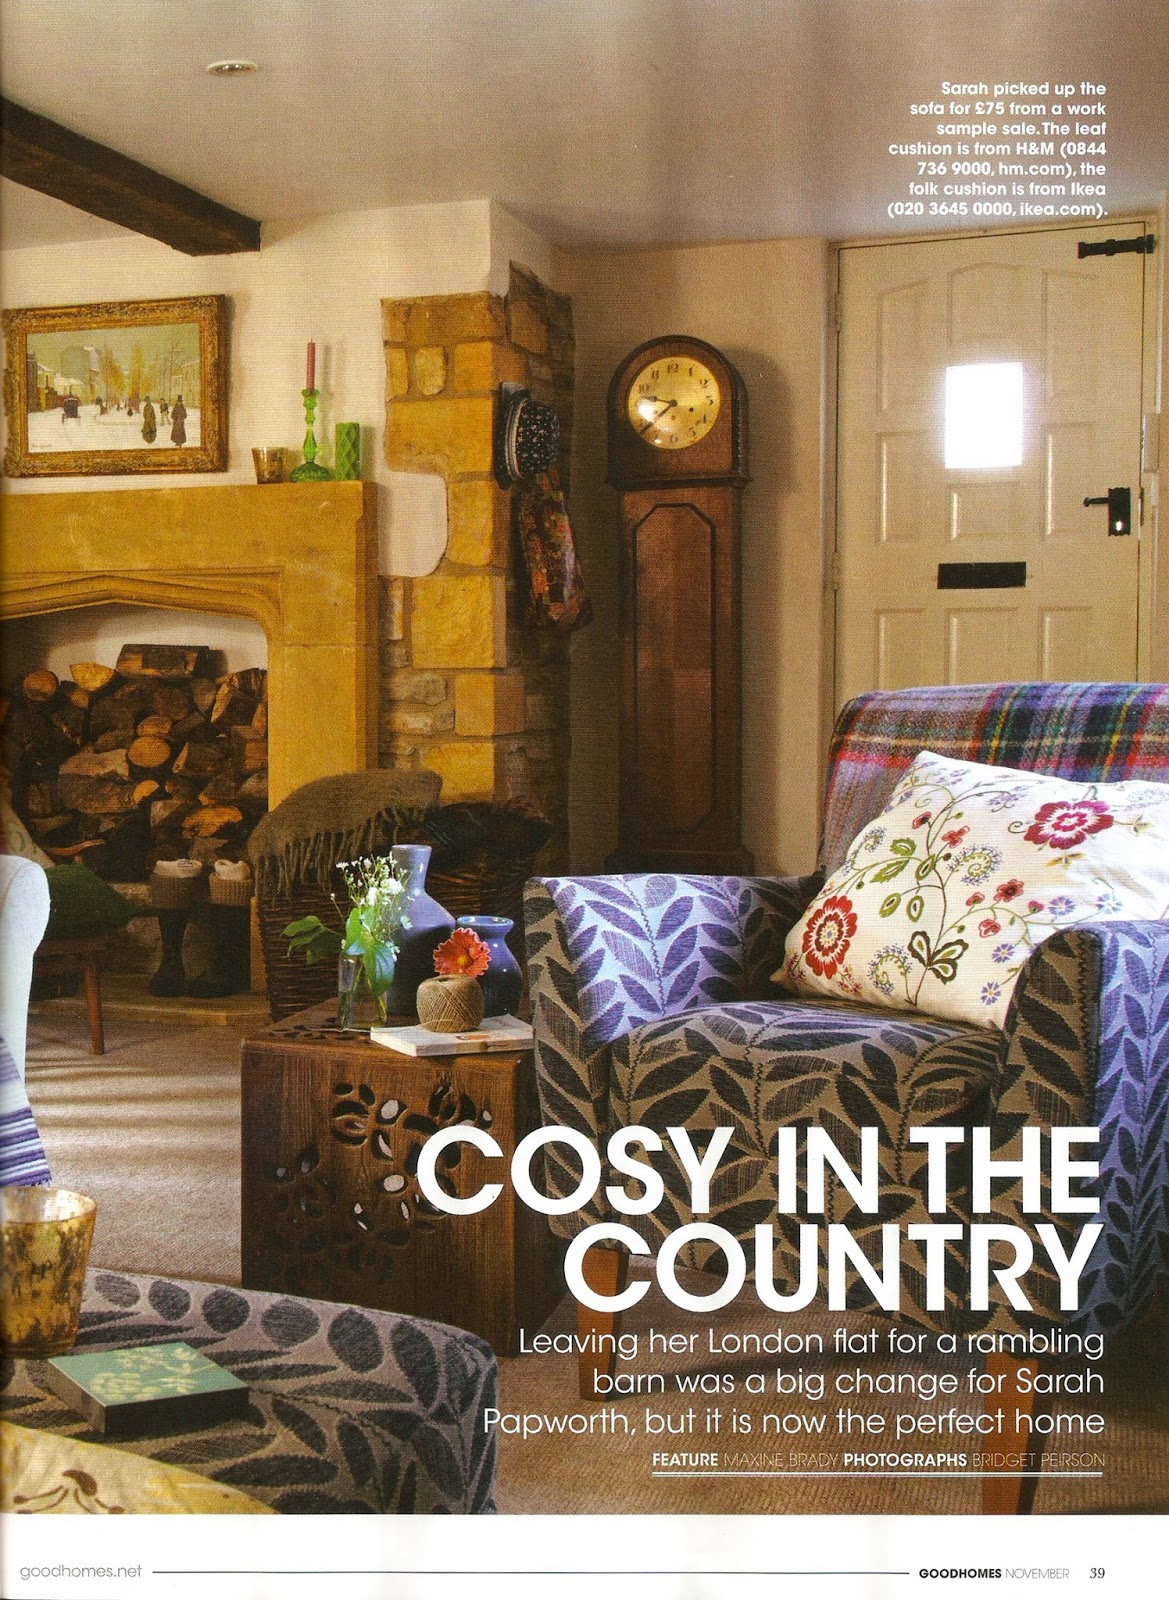 Find New Designers: Good Homes magazine feature: Cosy in the Country ...